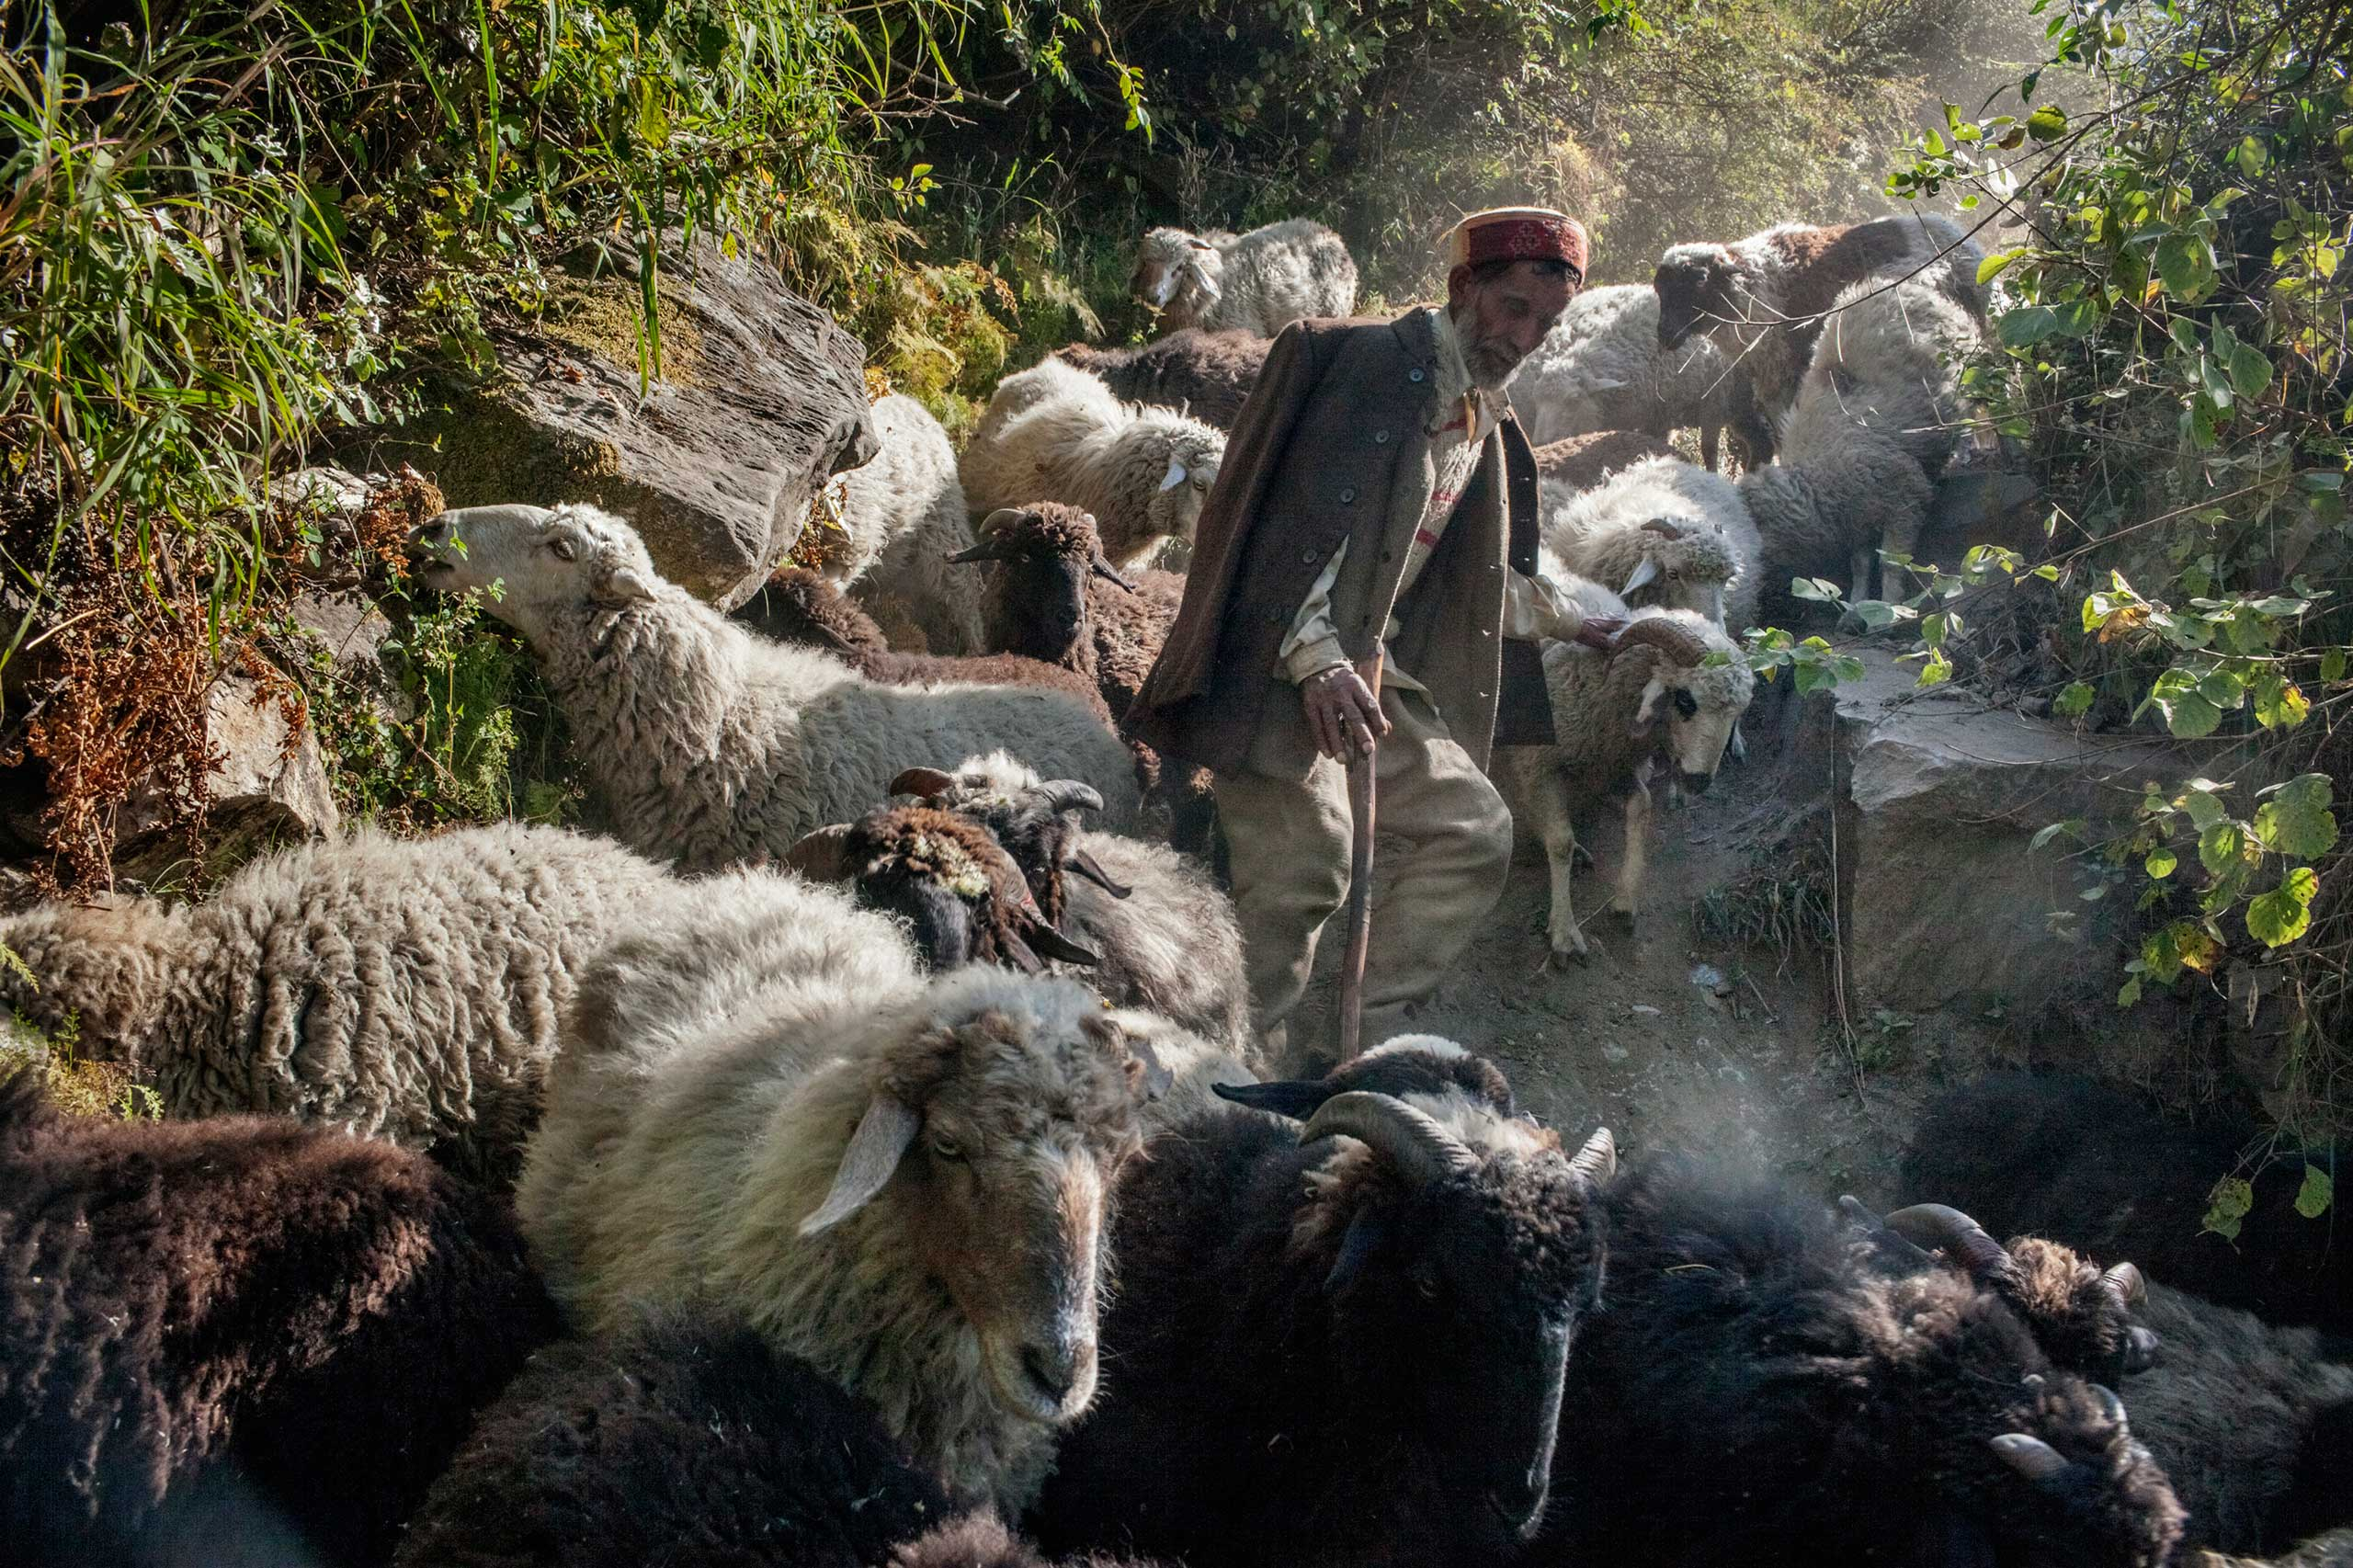 A shepherd walks his 200-head cattle herd downhill as winter approaches in Oct. 2013.